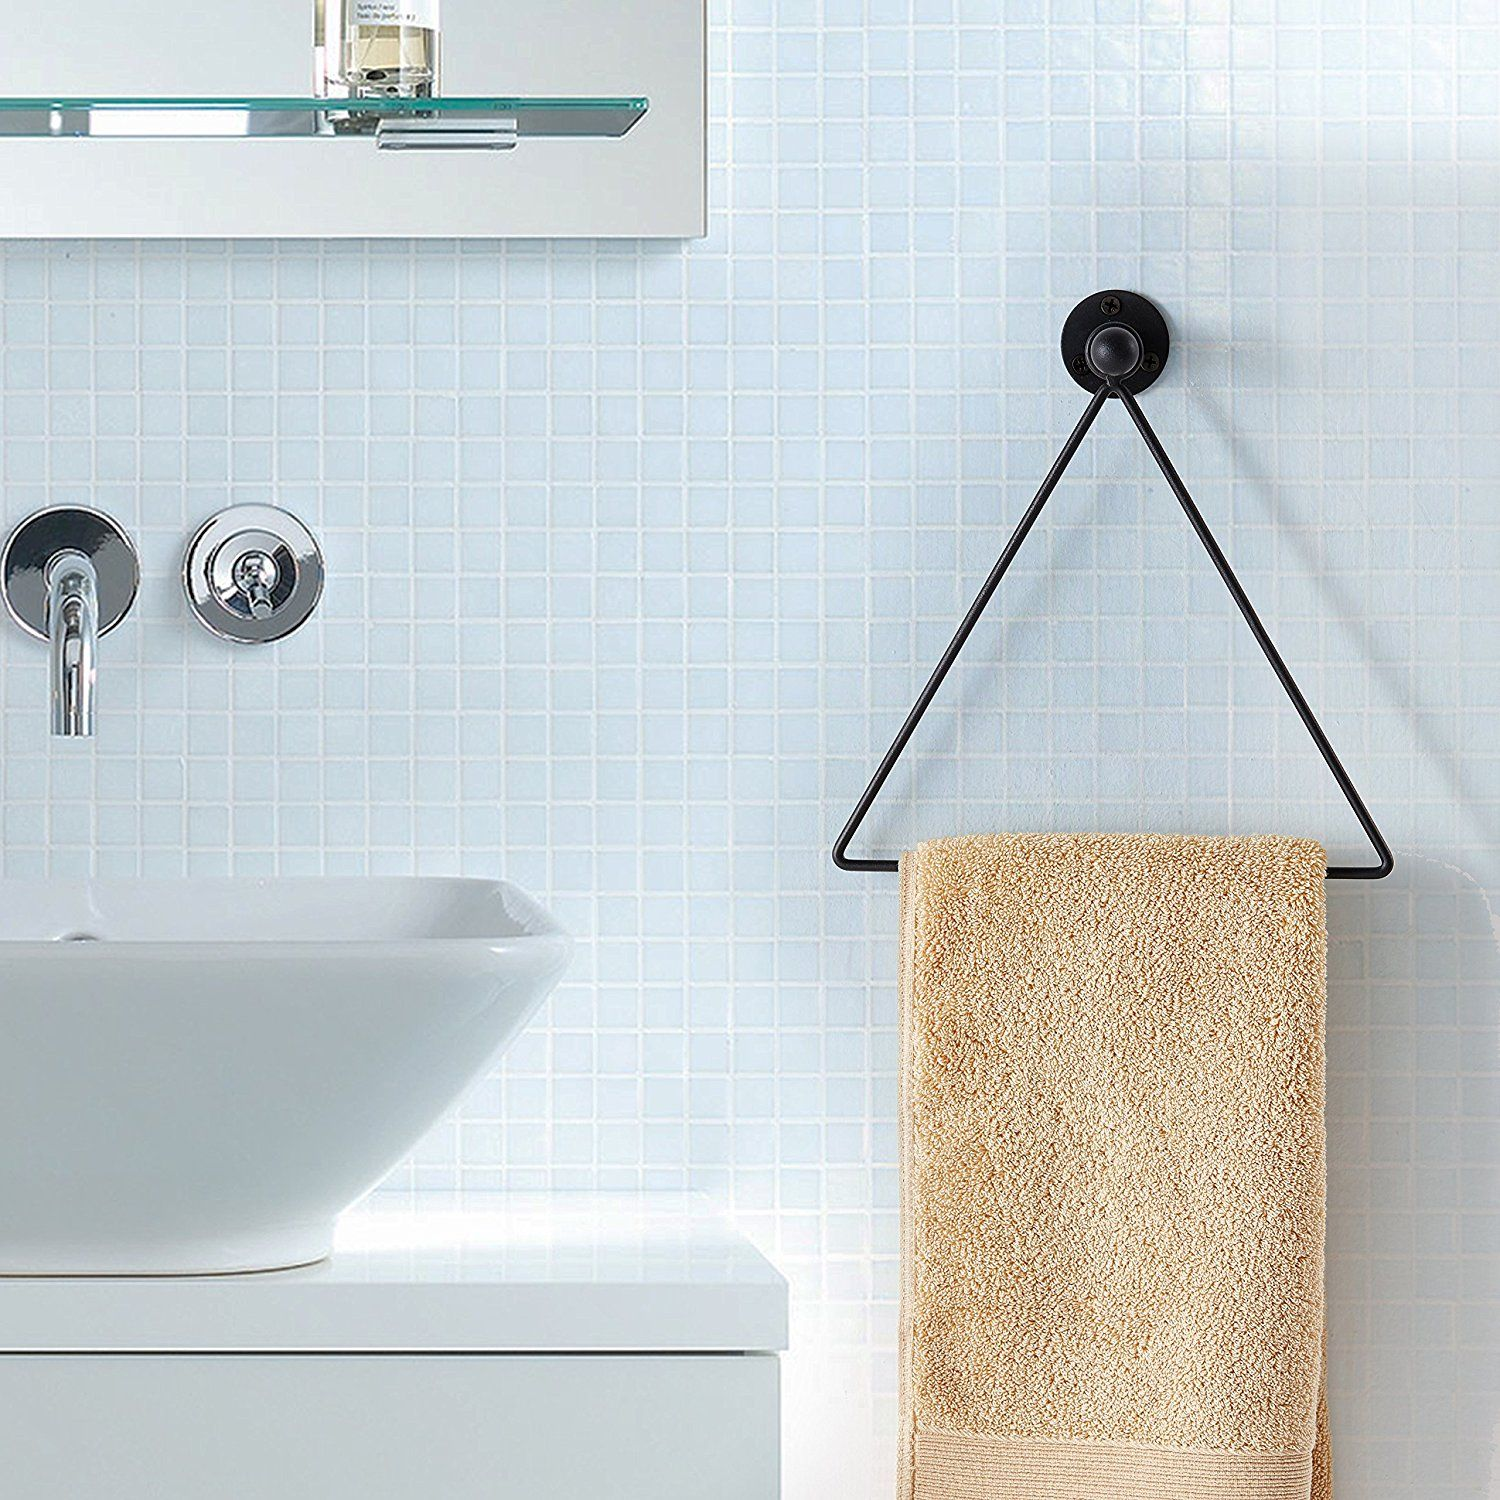 Not Your Ordinary Towel Ring Modern Wall Mounted Triangle Metal Bathroom Kitchen Hand Towel Bar Rack Black G Kitchen Hand Towels Towel Bar Bathroom Makeover